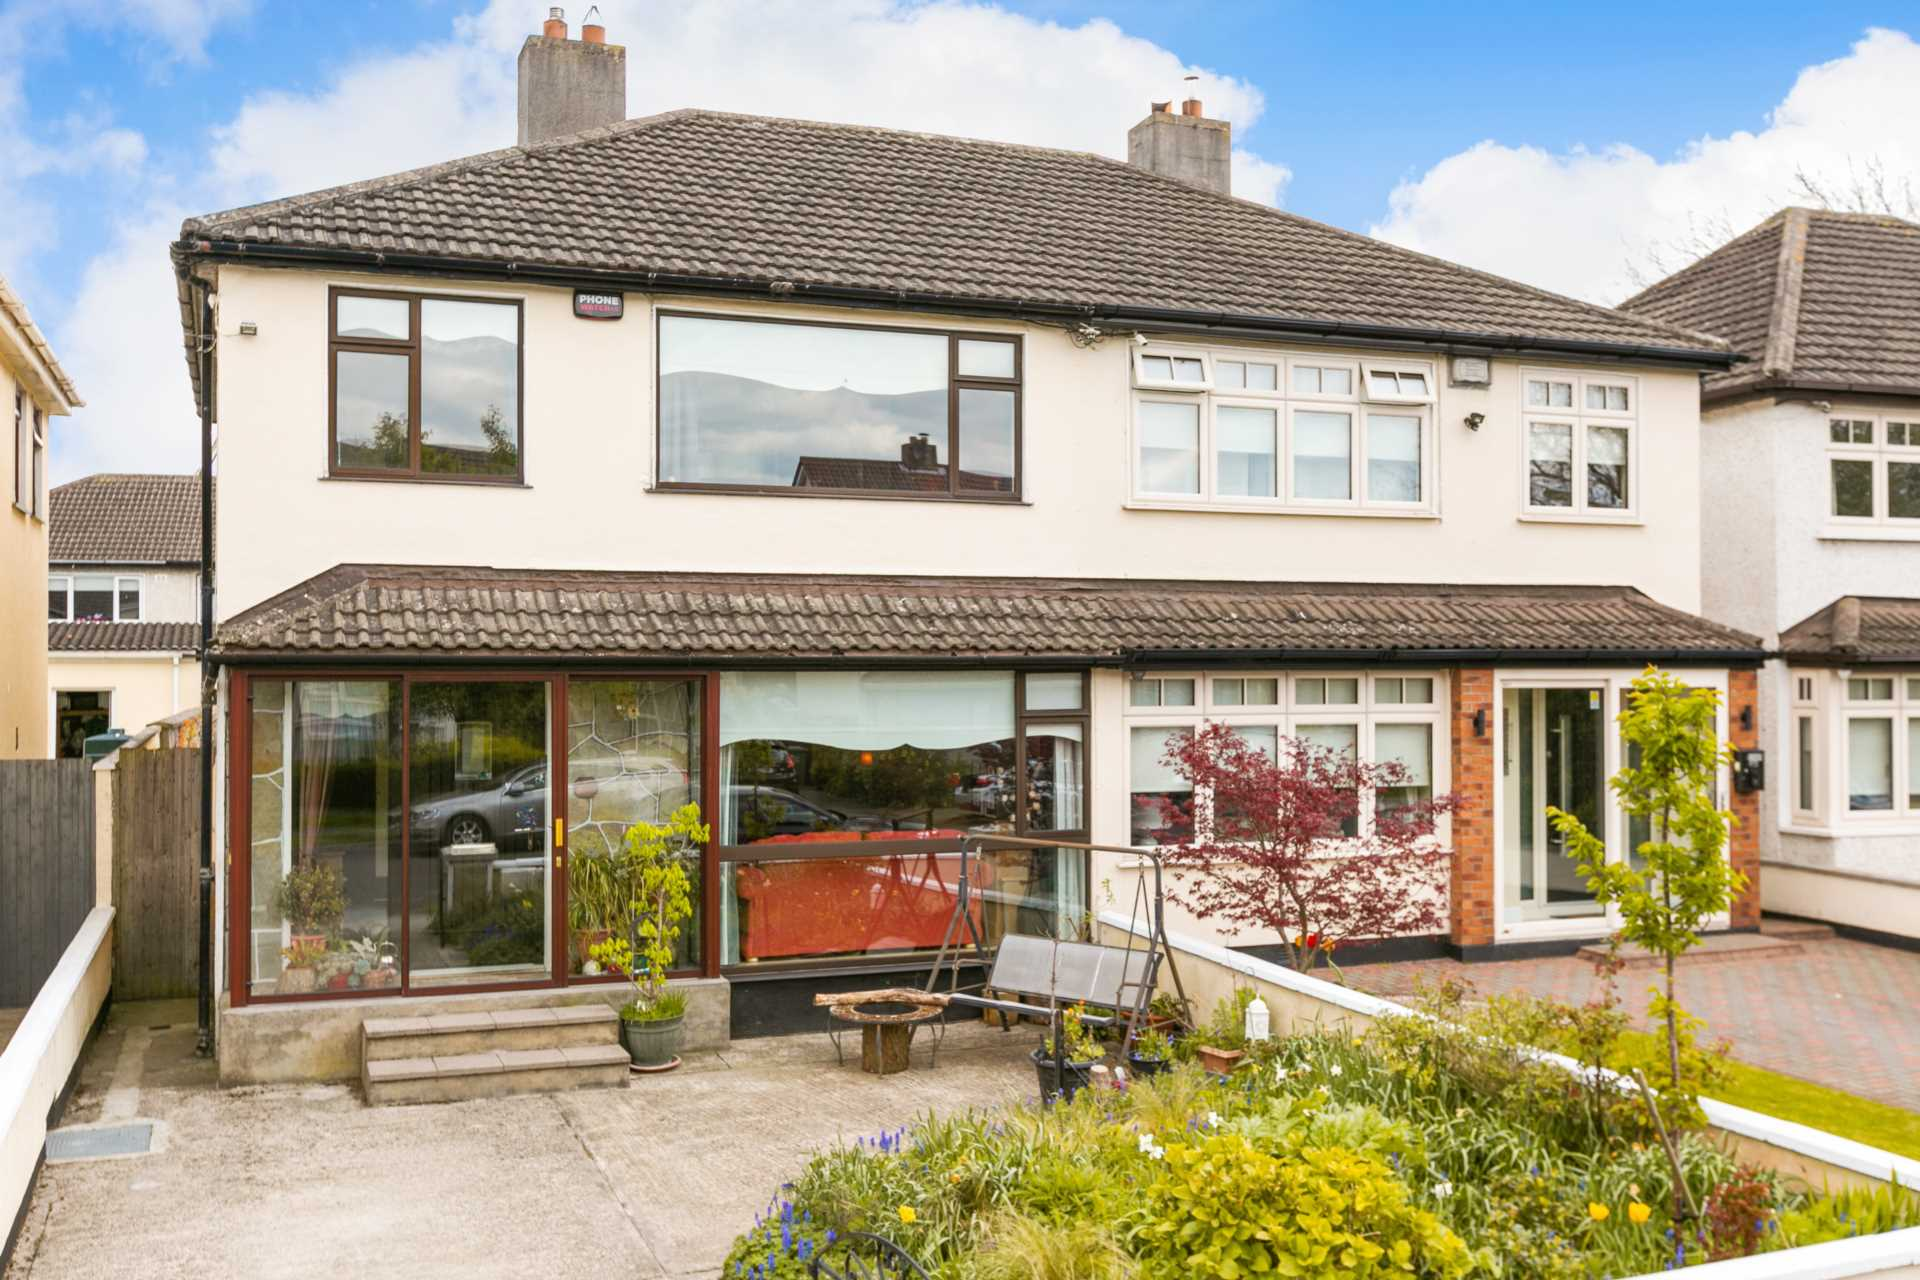 411 Orwell Park Drive, Templeogue, Dublin 6w, Image 1